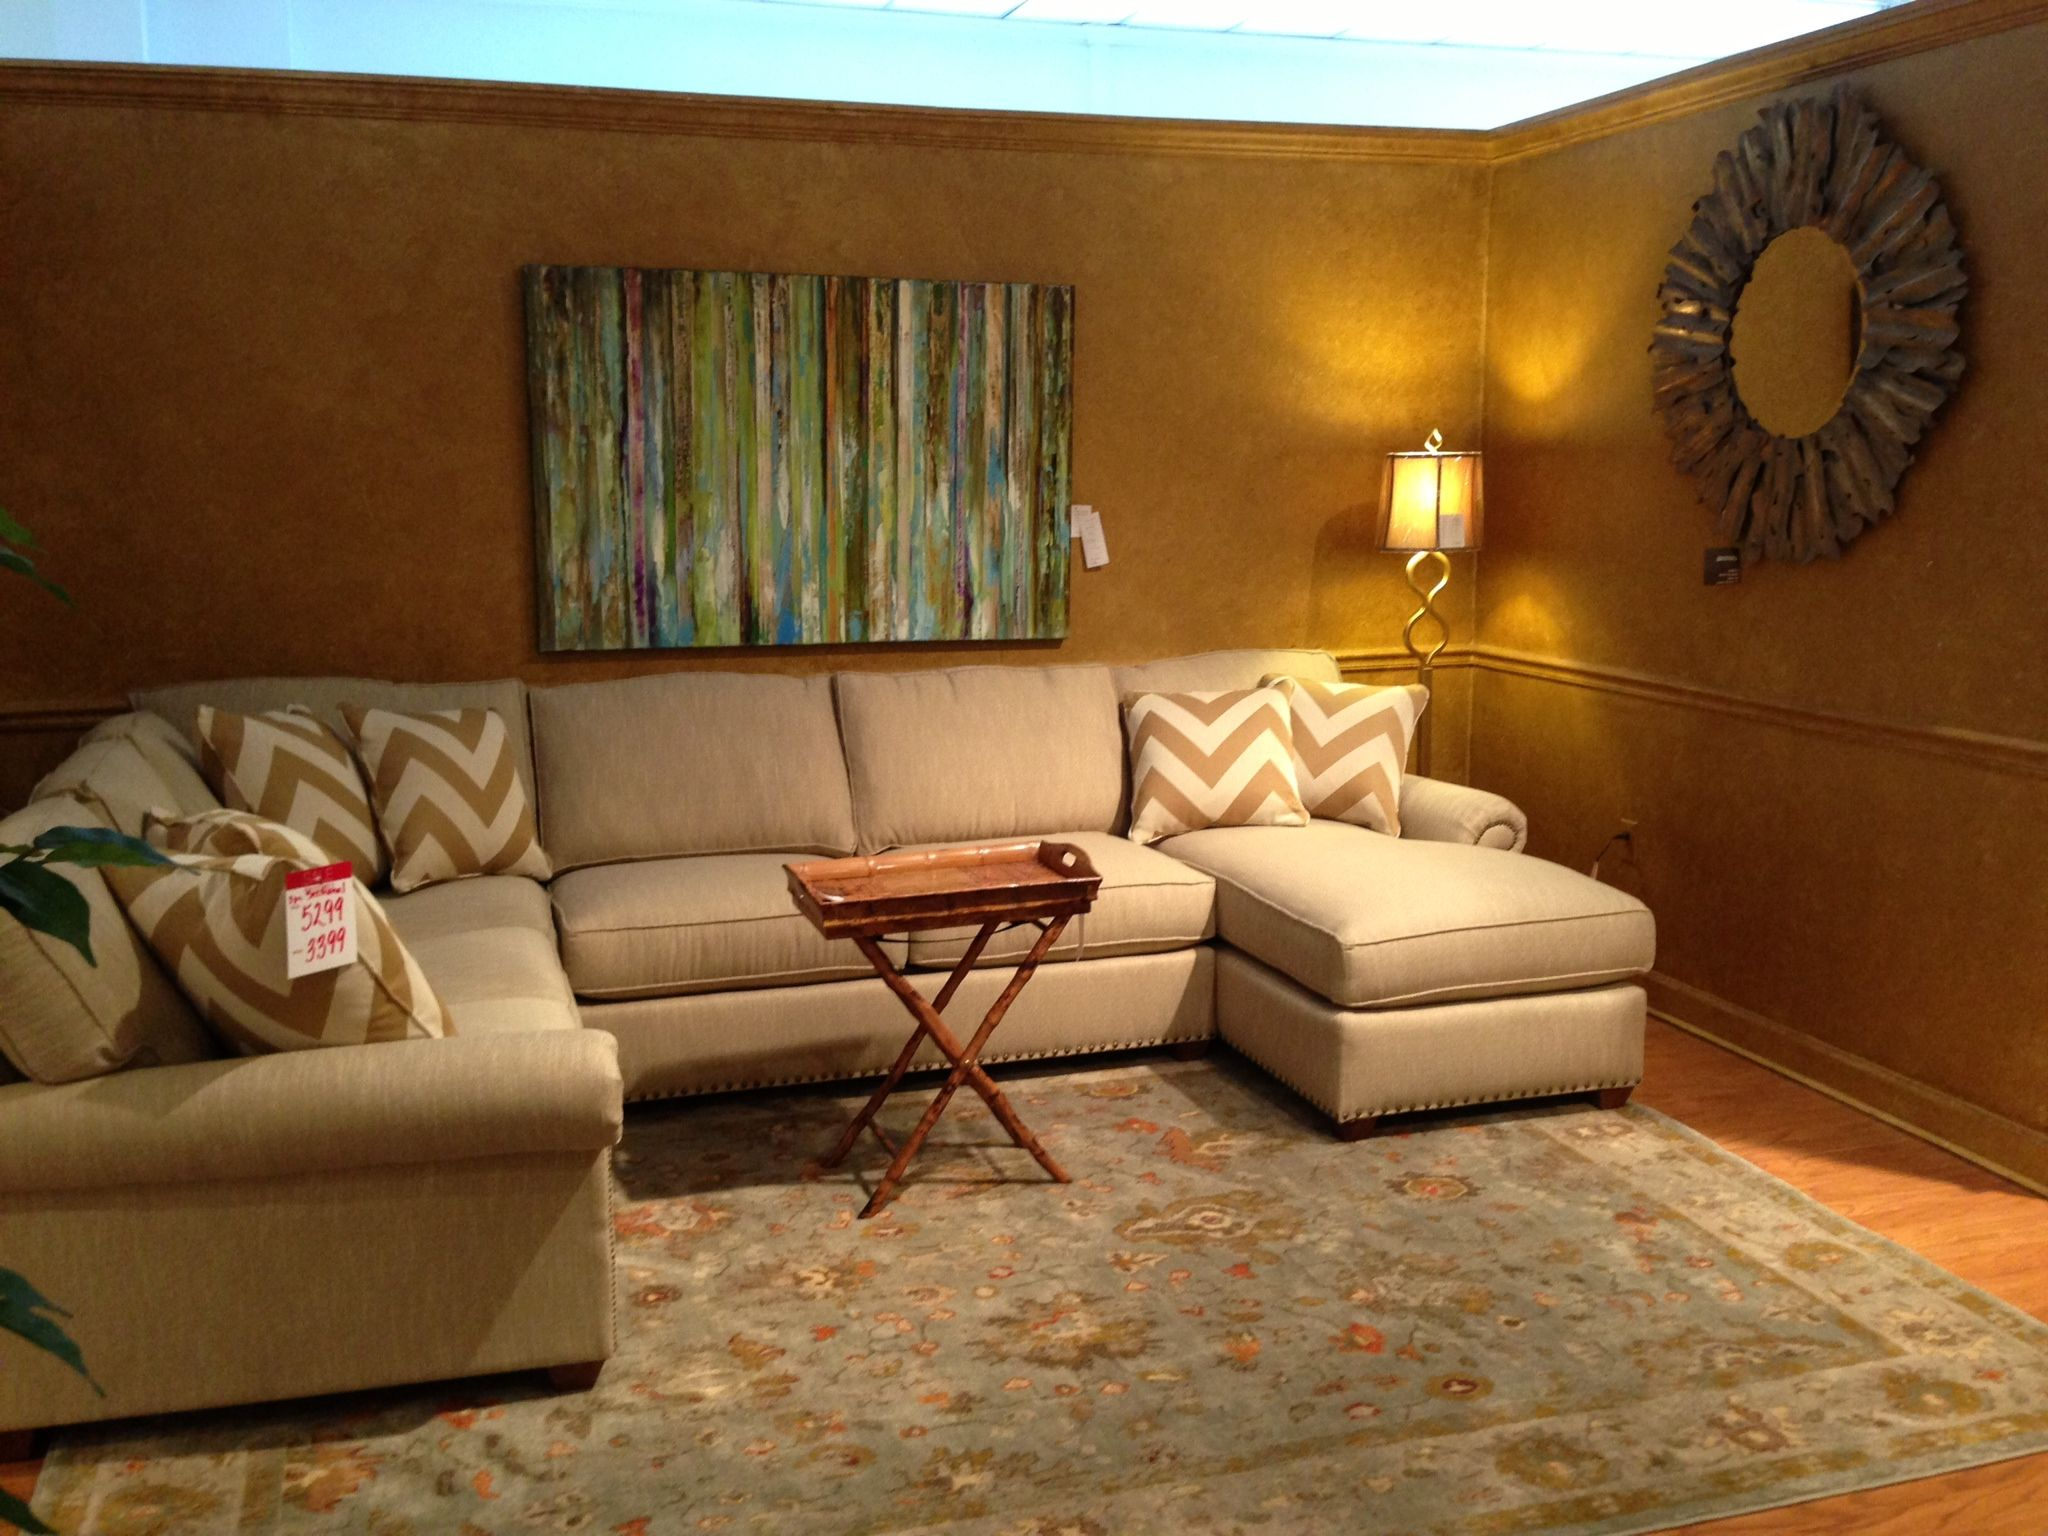 Sectional with chevron pillows